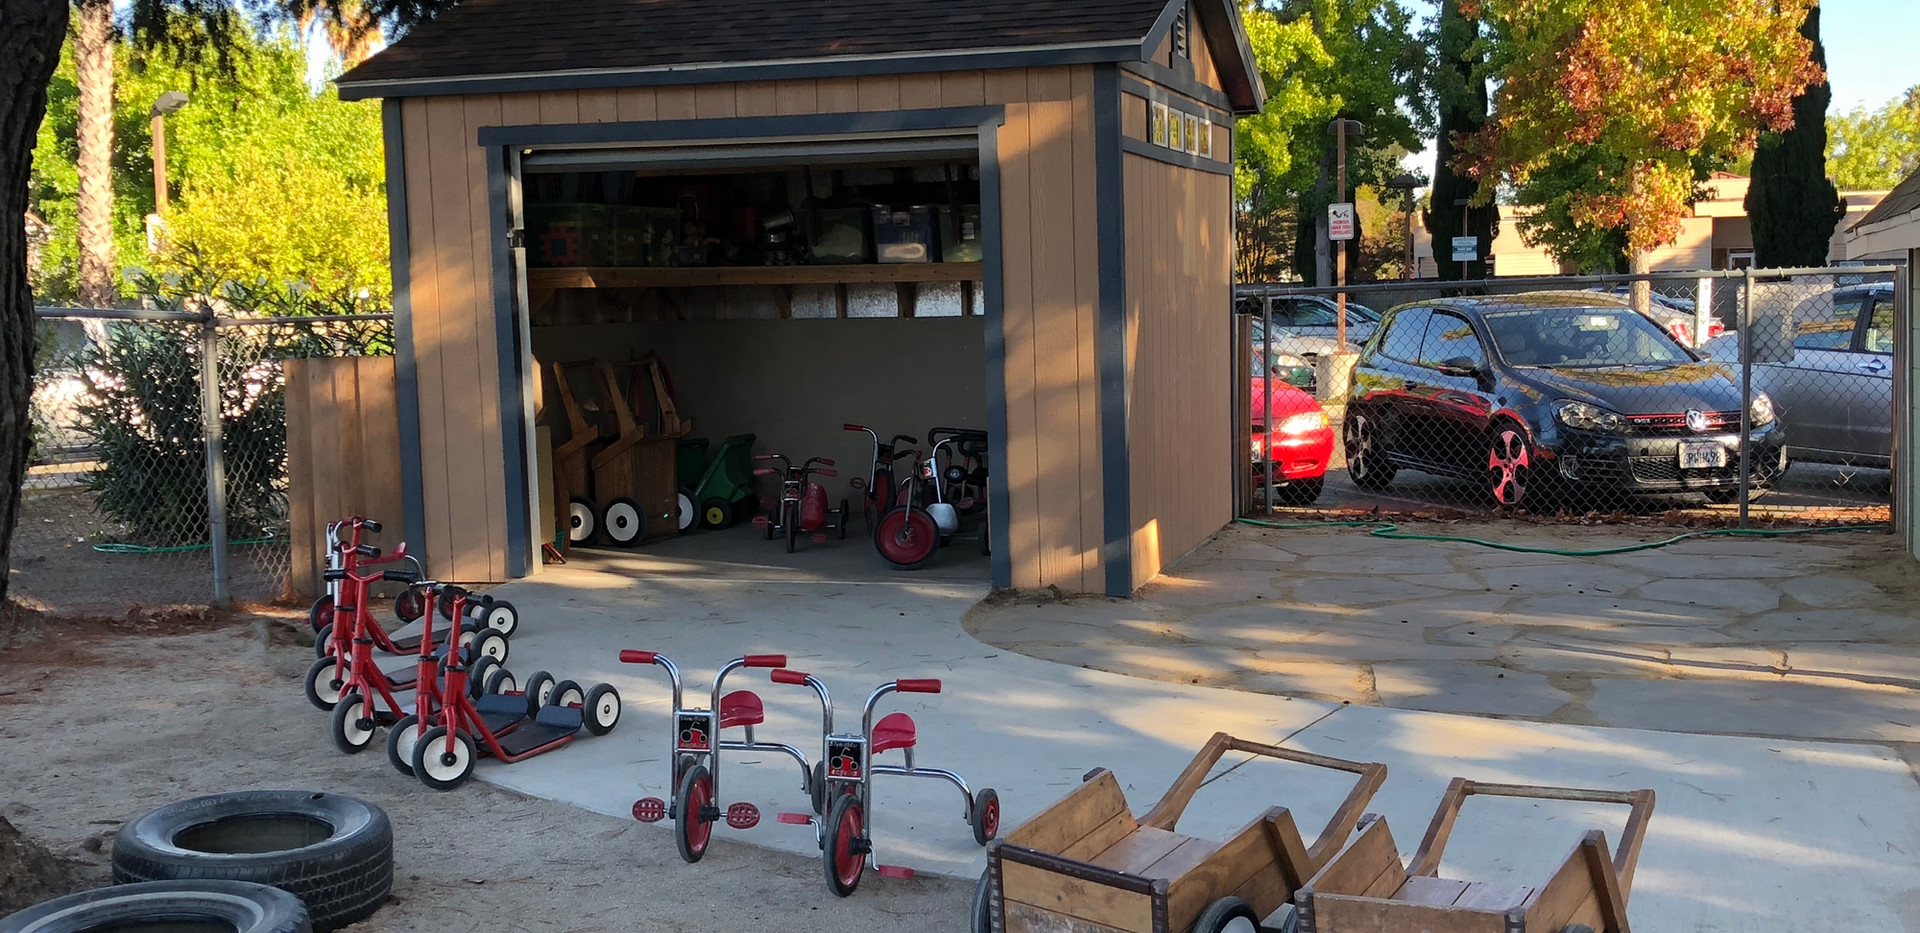 Scooters, Bikes, and Wagons